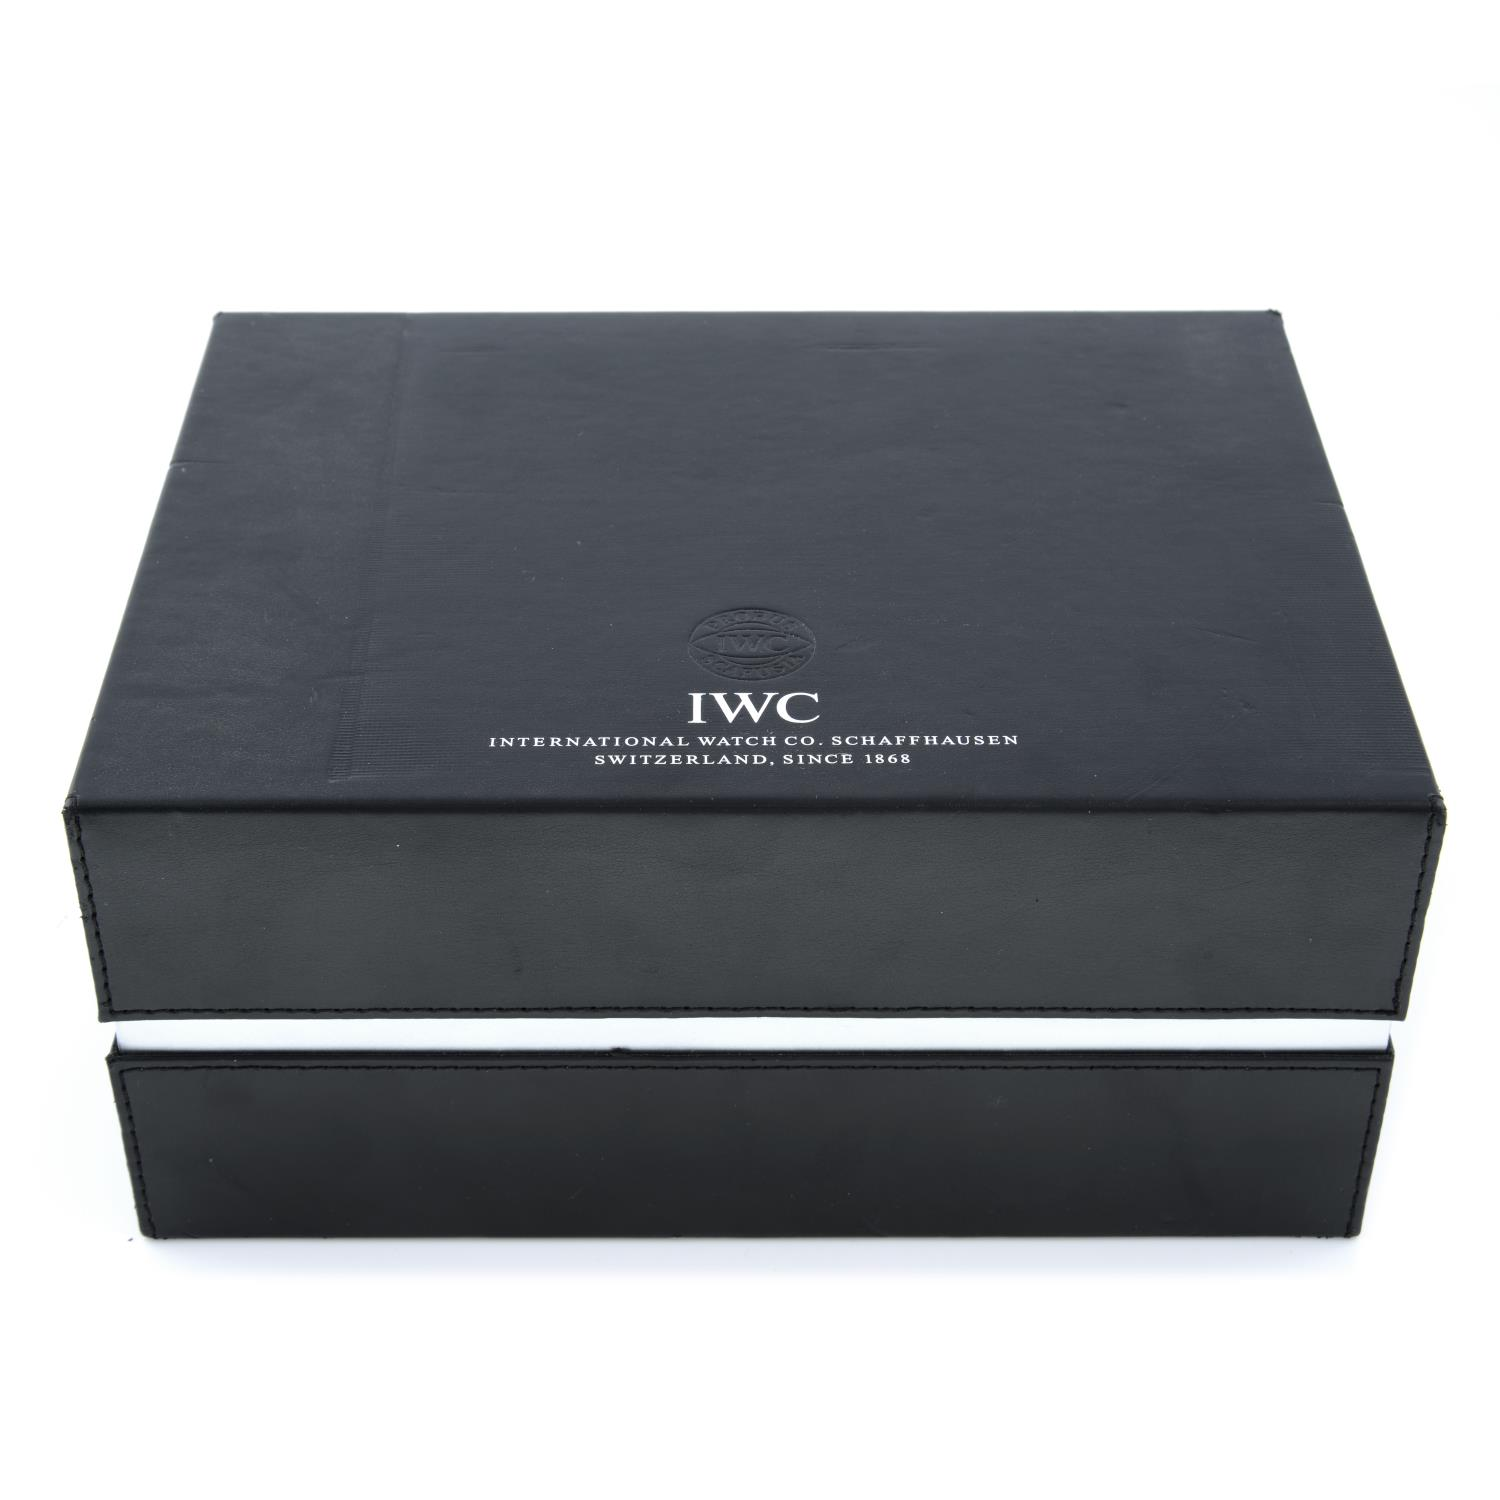 IWC - a group of ten watch boxes, some incomplete.